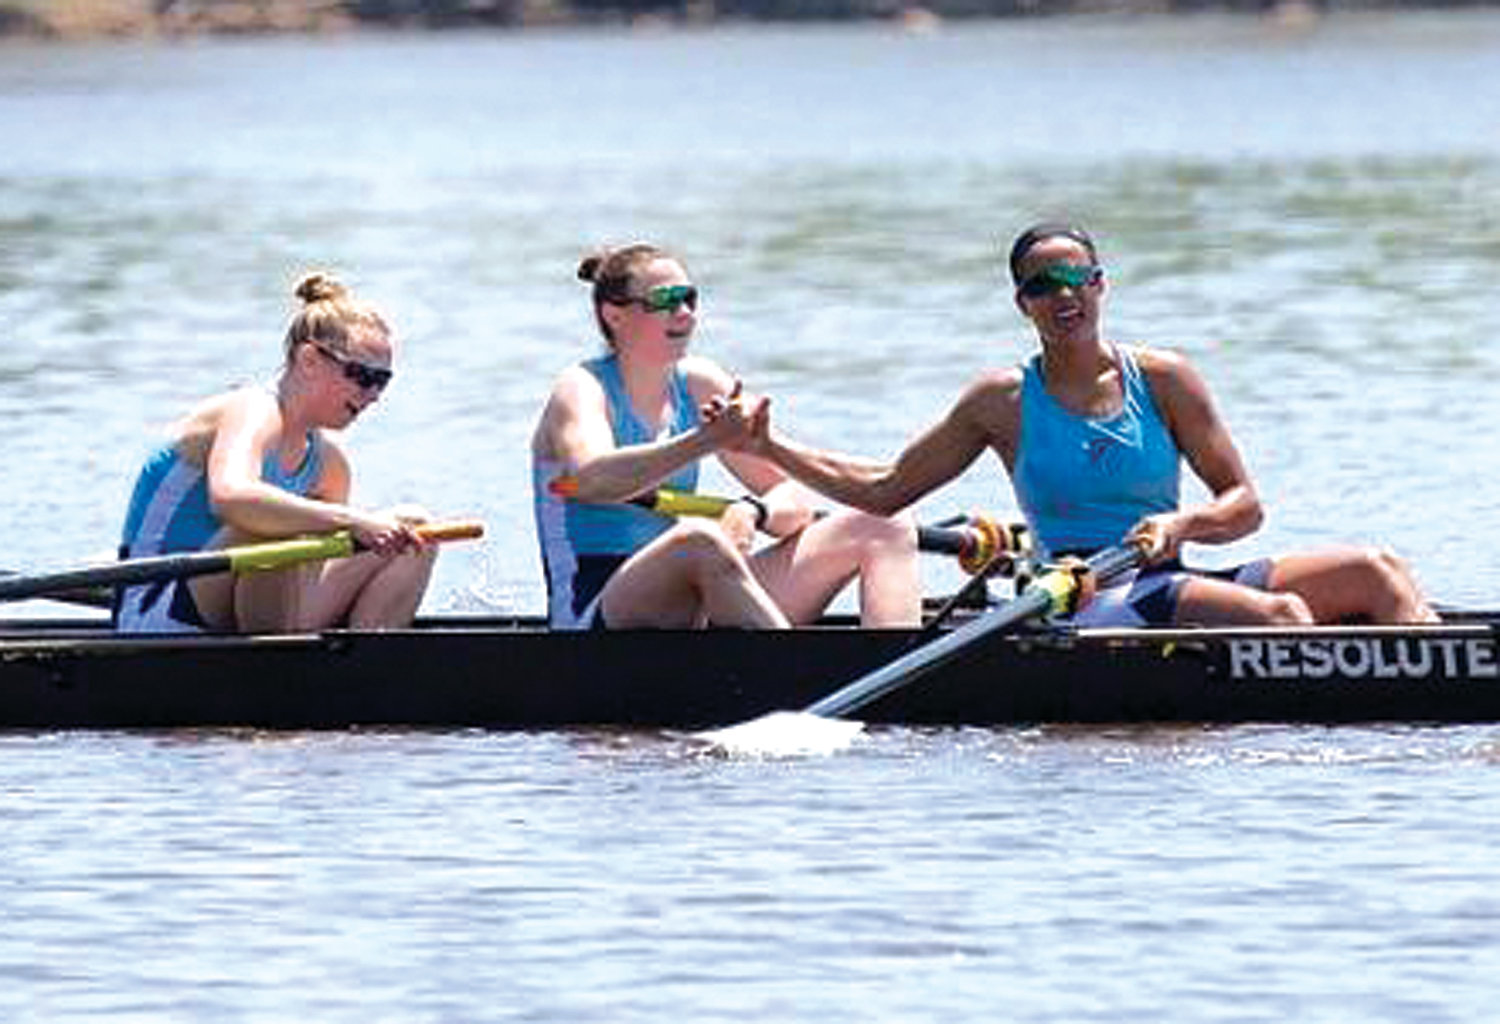 ON THE WATER: Members of the URI women's crew team, including Erika Pena (far right) compete during this past season.